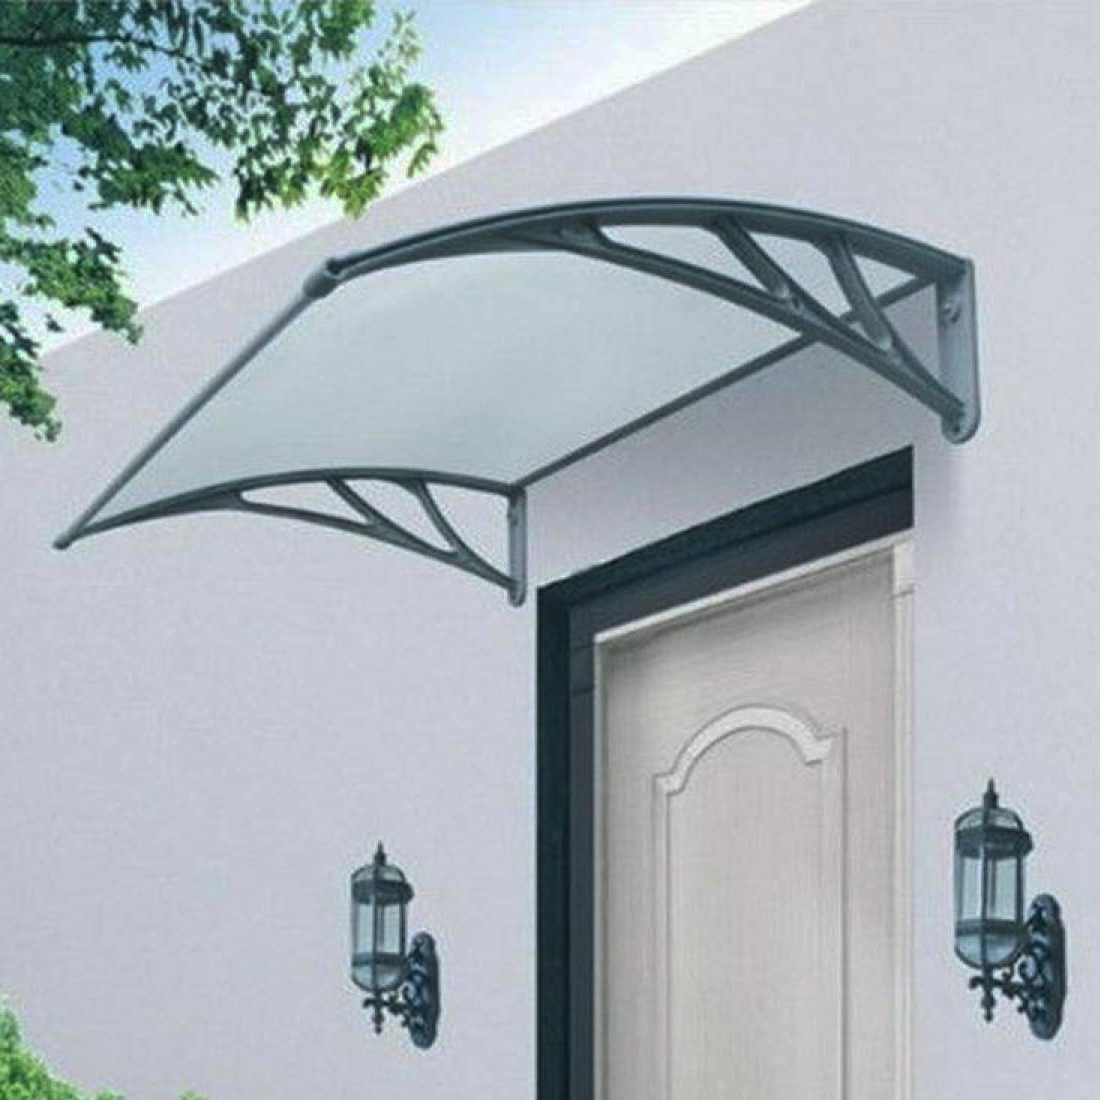 Door Canopy Roof Shelter Awning Shade Rain Cover Porch